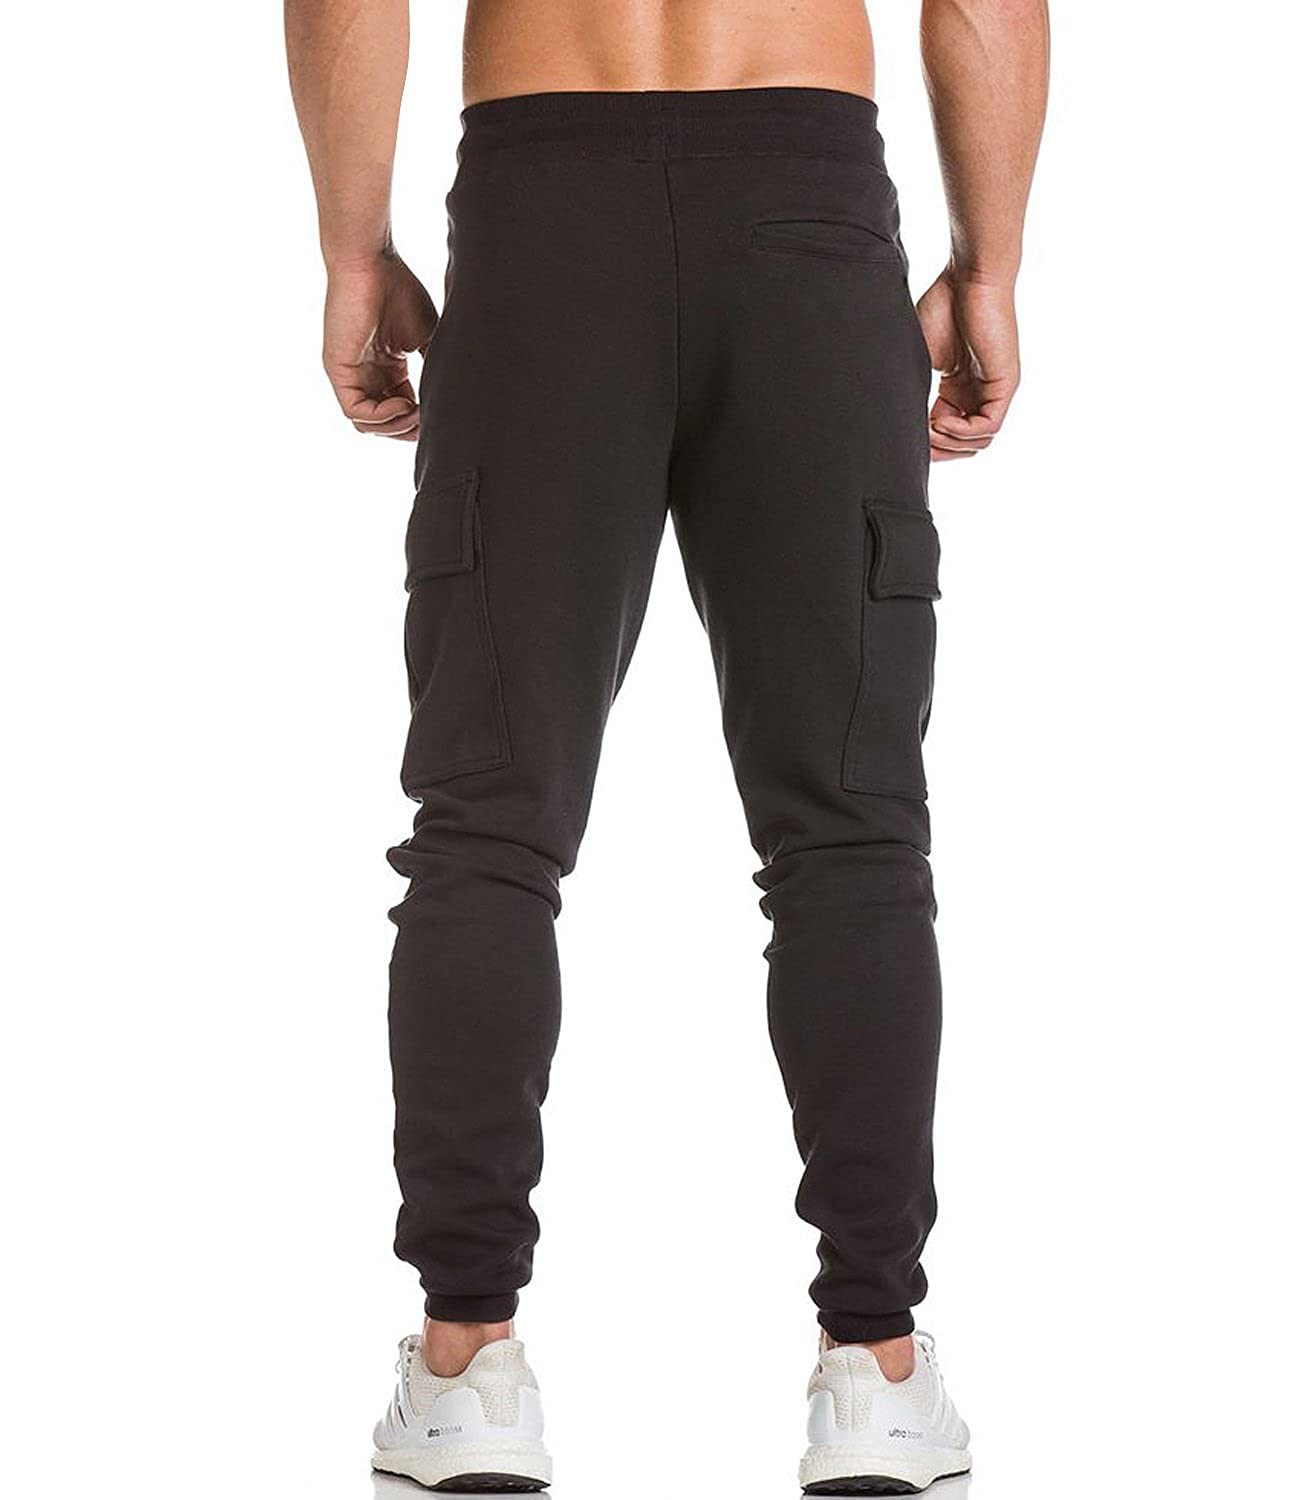 cbc227d72 Amazon.com  Men s Cargo Jogger Pants Workout Sweatpants Casual Trousers ( Black